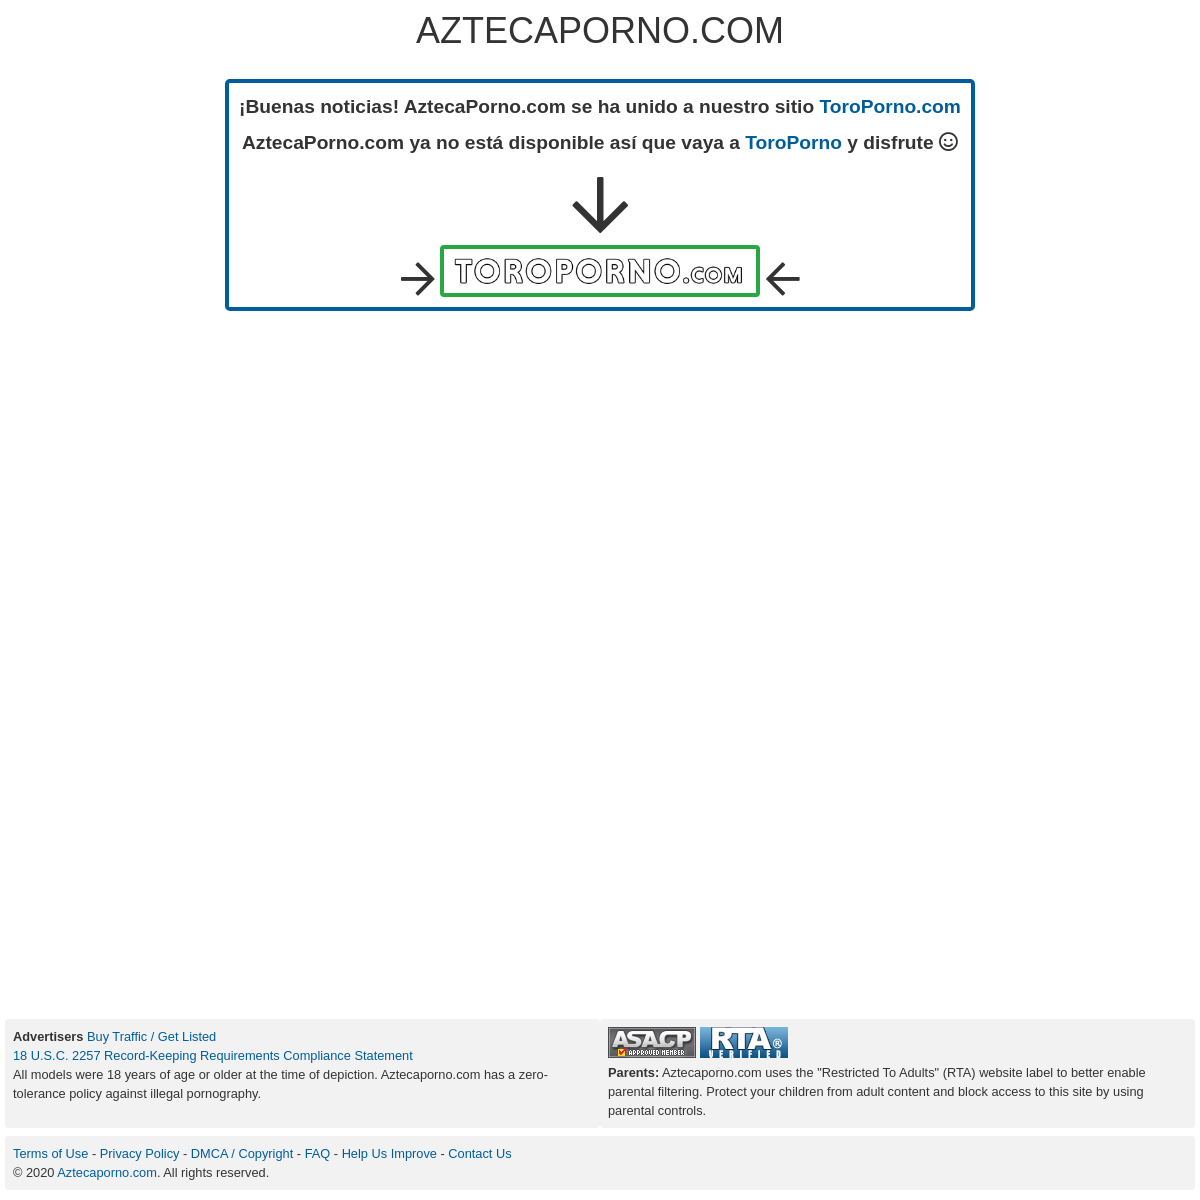 A complete backup of www.www.aztecaporno.com